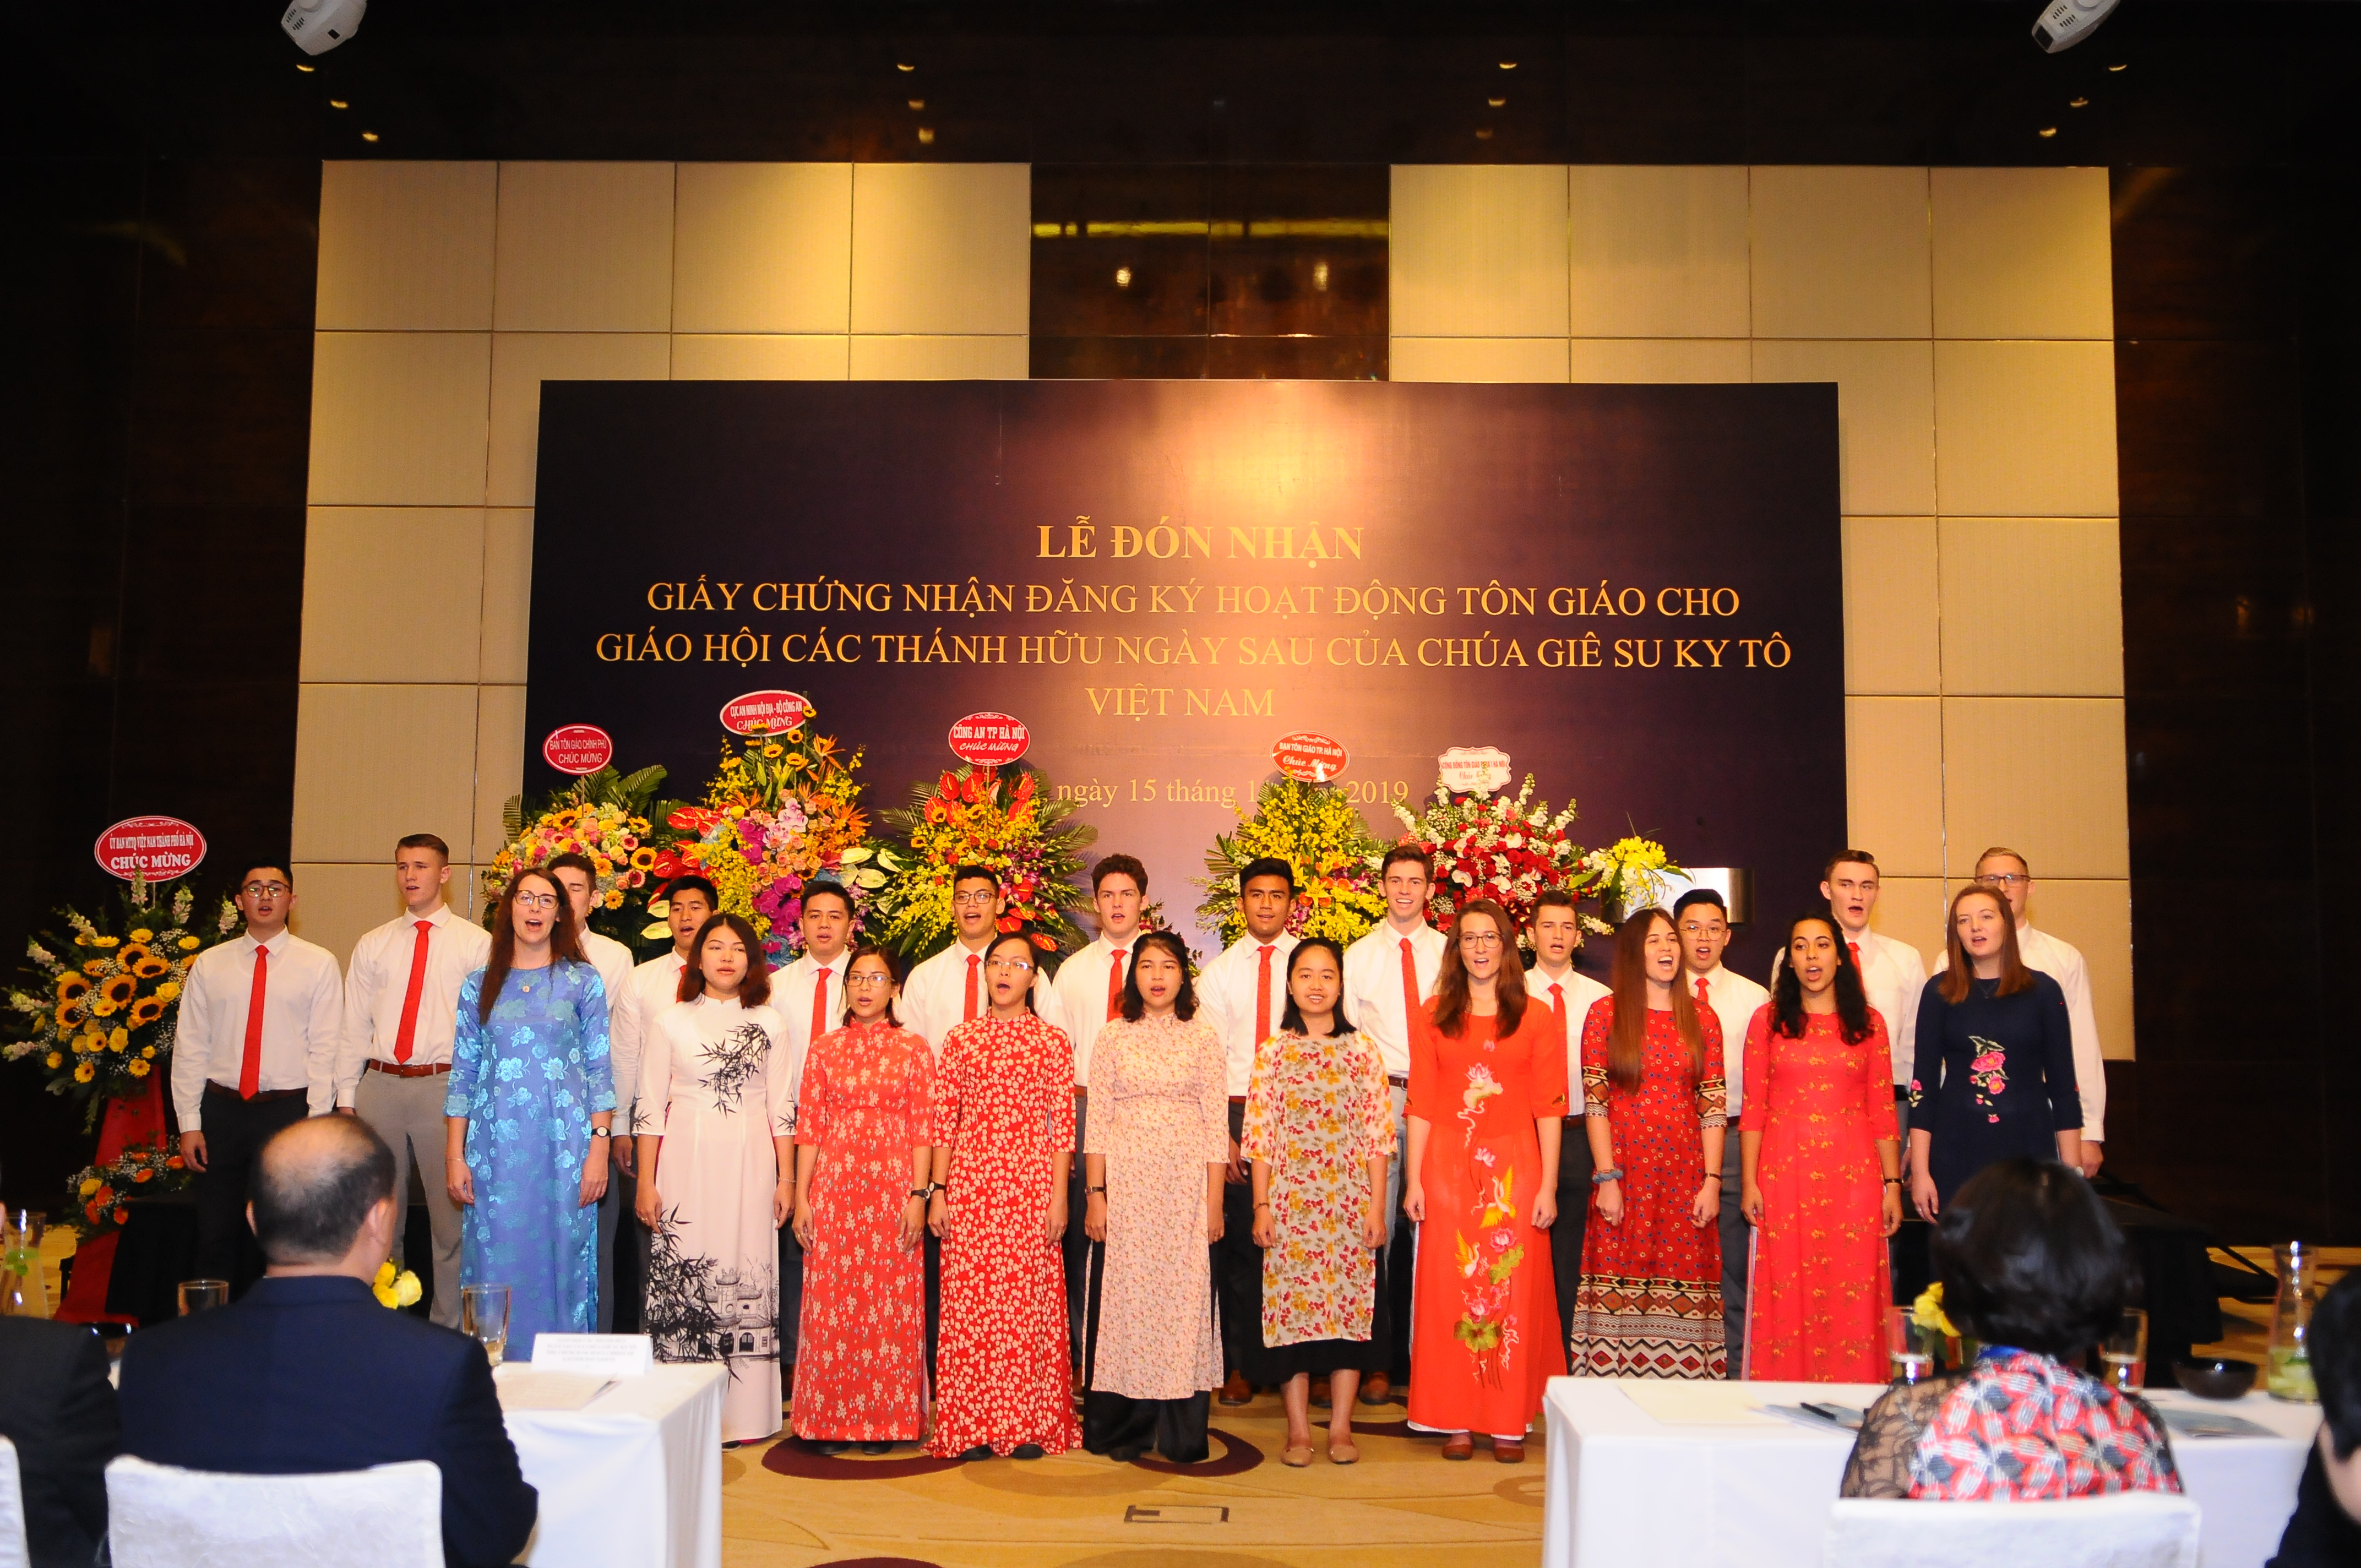 """A special choir of Church members sing """"I Am a Child of God"""" at the ceremony recognition ceremony in Hanoi, Vietnam, on Nov. 14, 2019."""